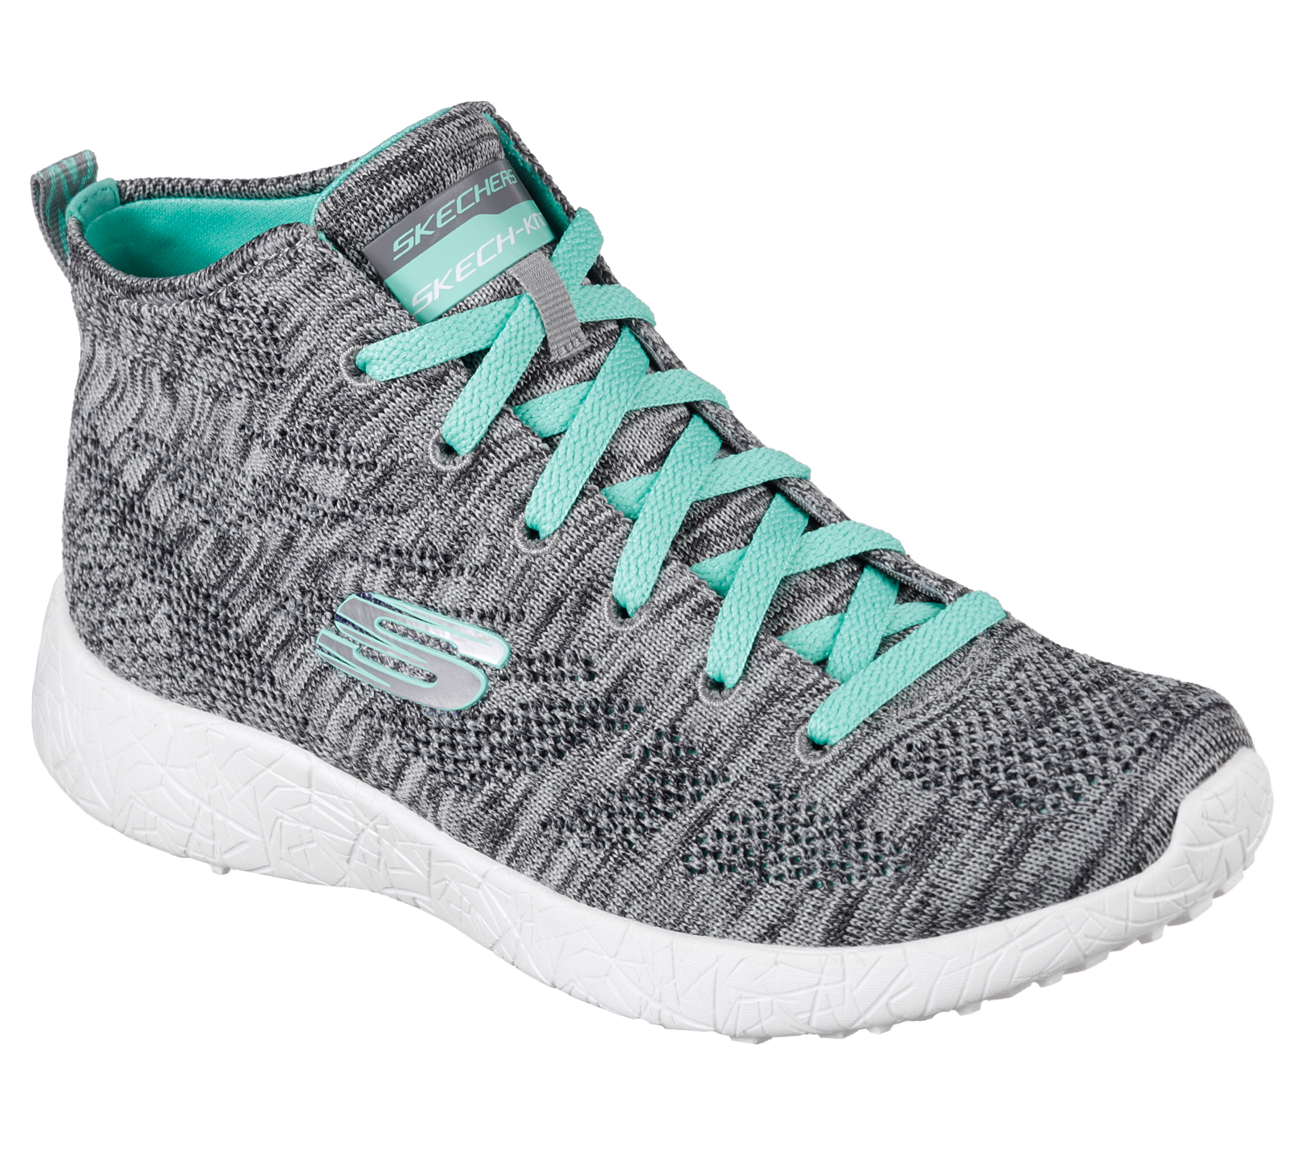 Where To Buy Skechers Shoes In Canada